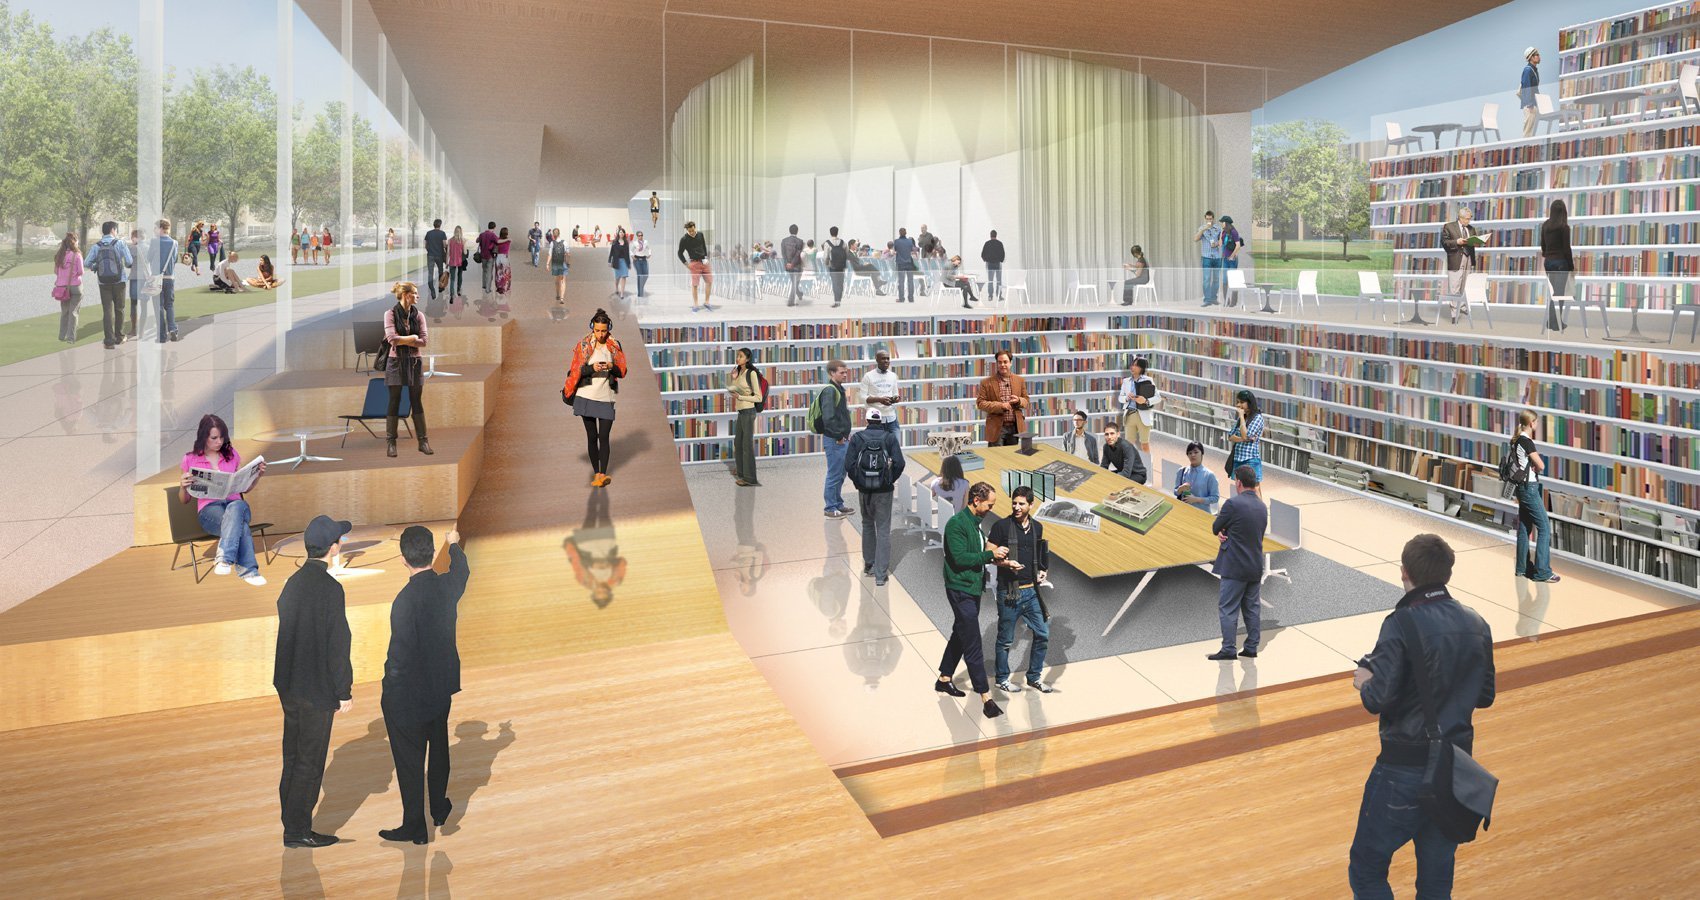 WEISS / MANFREDI To Design Kent Stateu0027s New, $40 Million Architecture  Building   ArchDaily